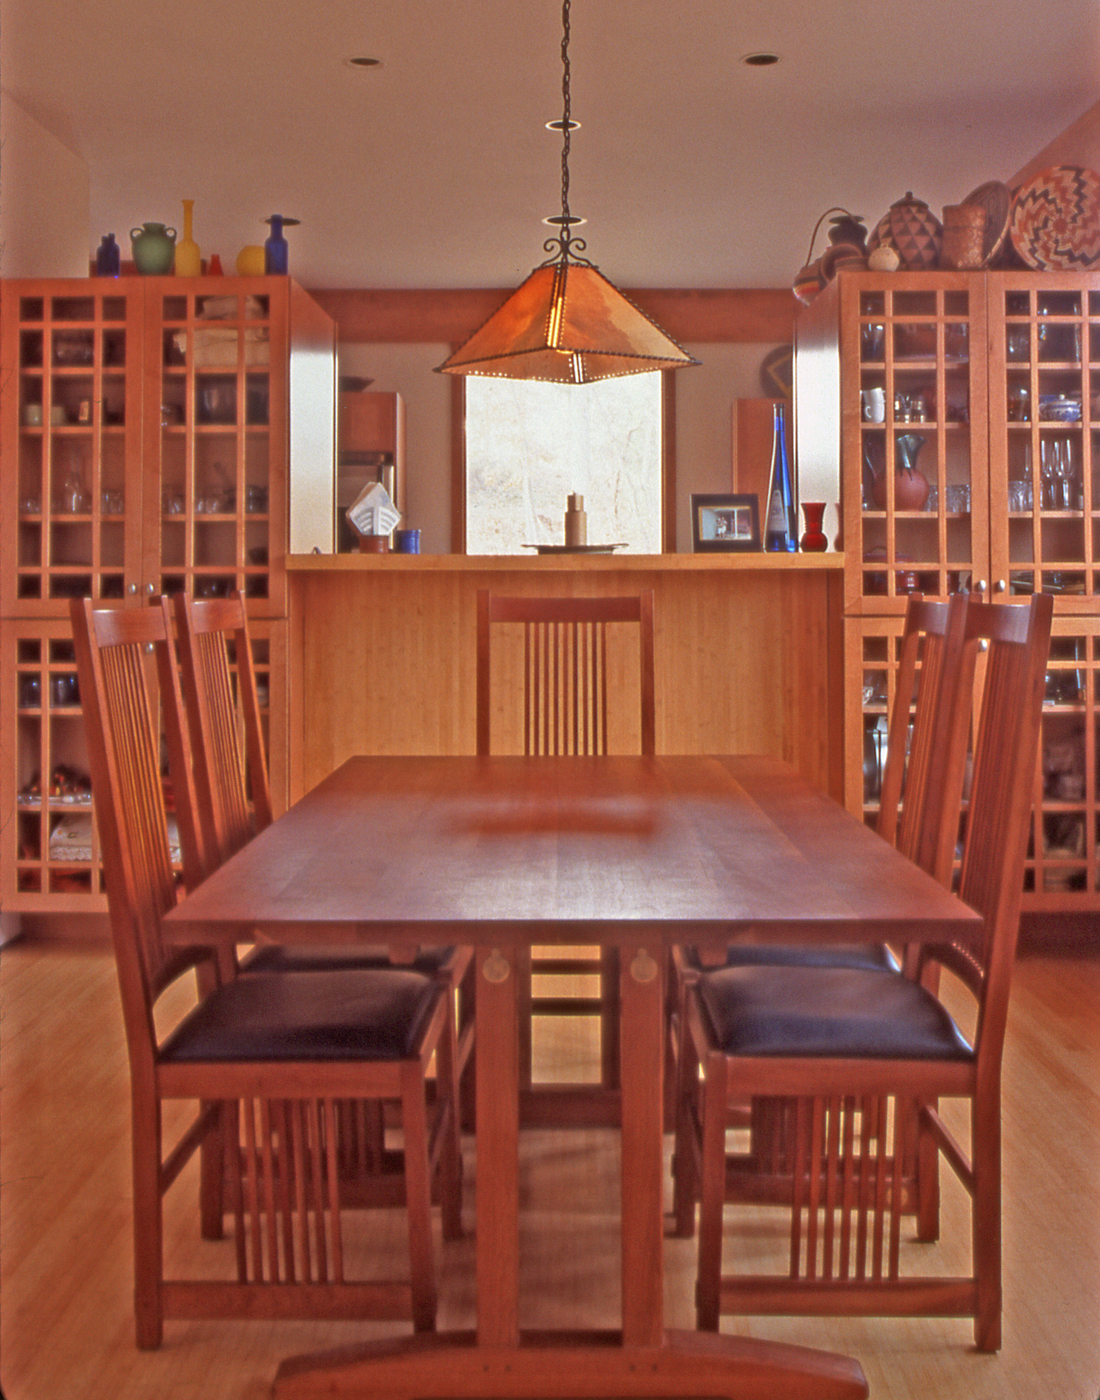 Interior-kitchen-table.jpg